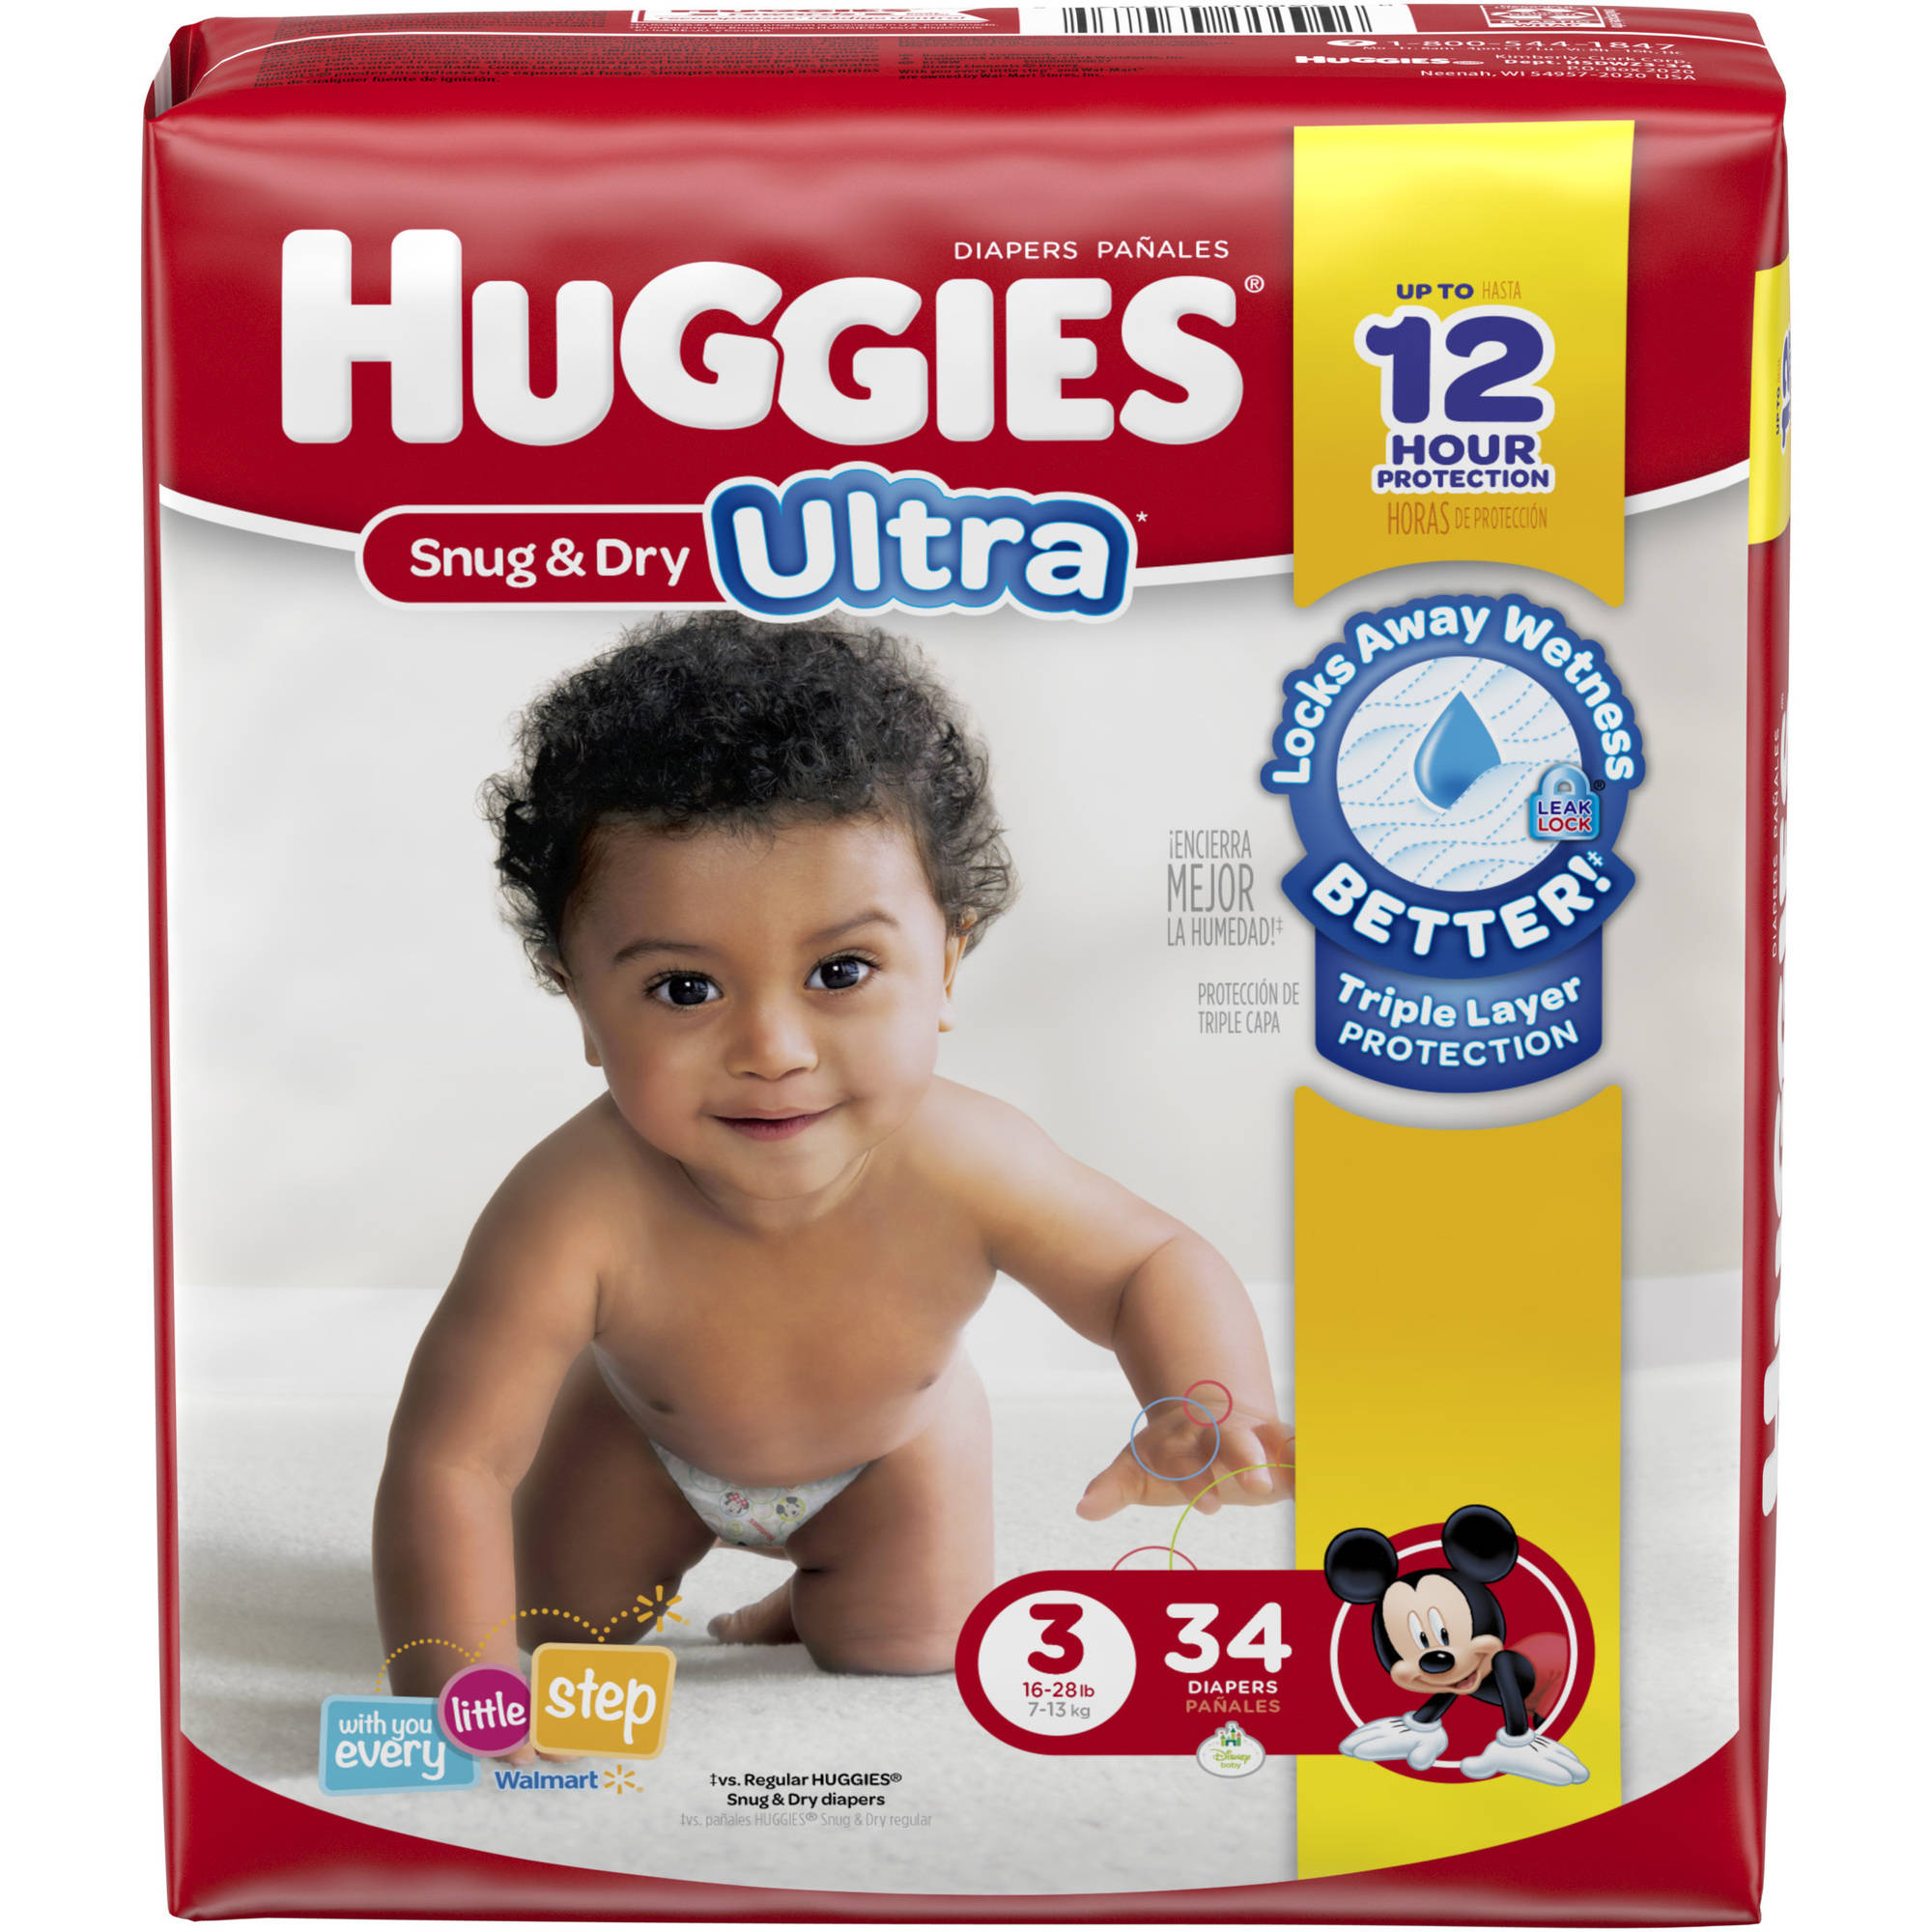 HUGGIES Snug & Dry Ultra Diapers, Size 3, 34 Diapers